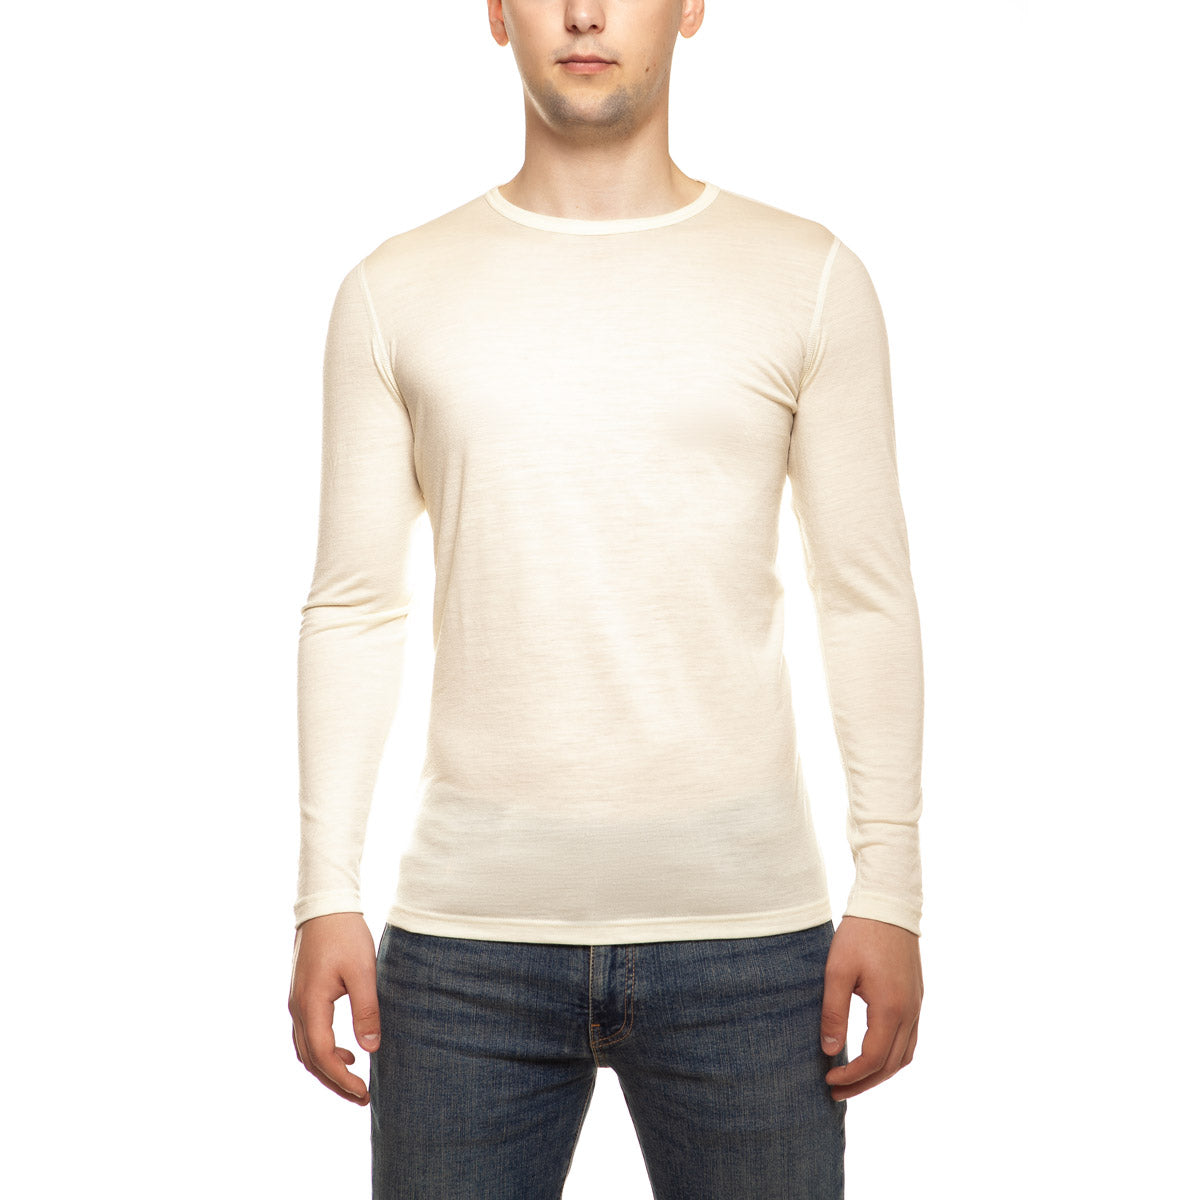 menique Men's Merino 160 Long Sleeve Crew Natural Color